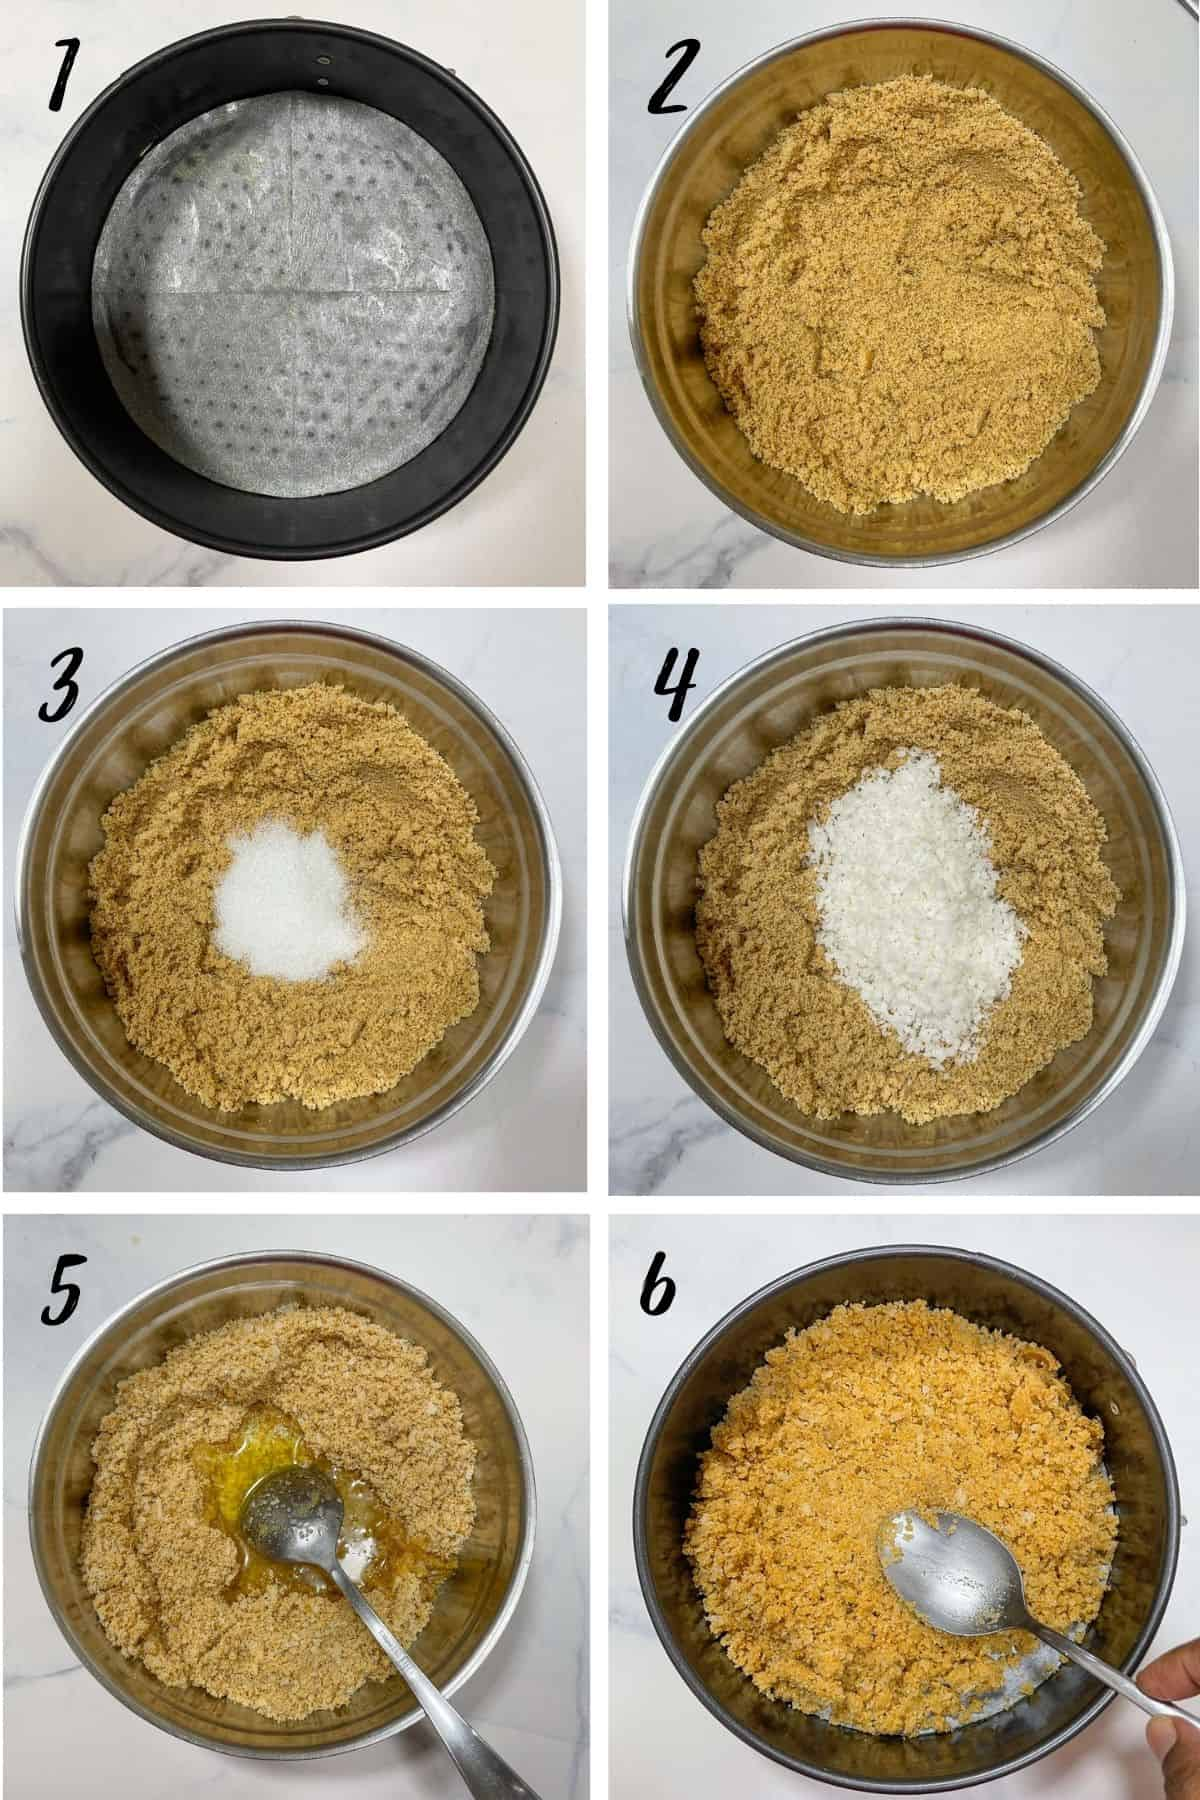 A poster of 6 images showing how to make cheesecake crust